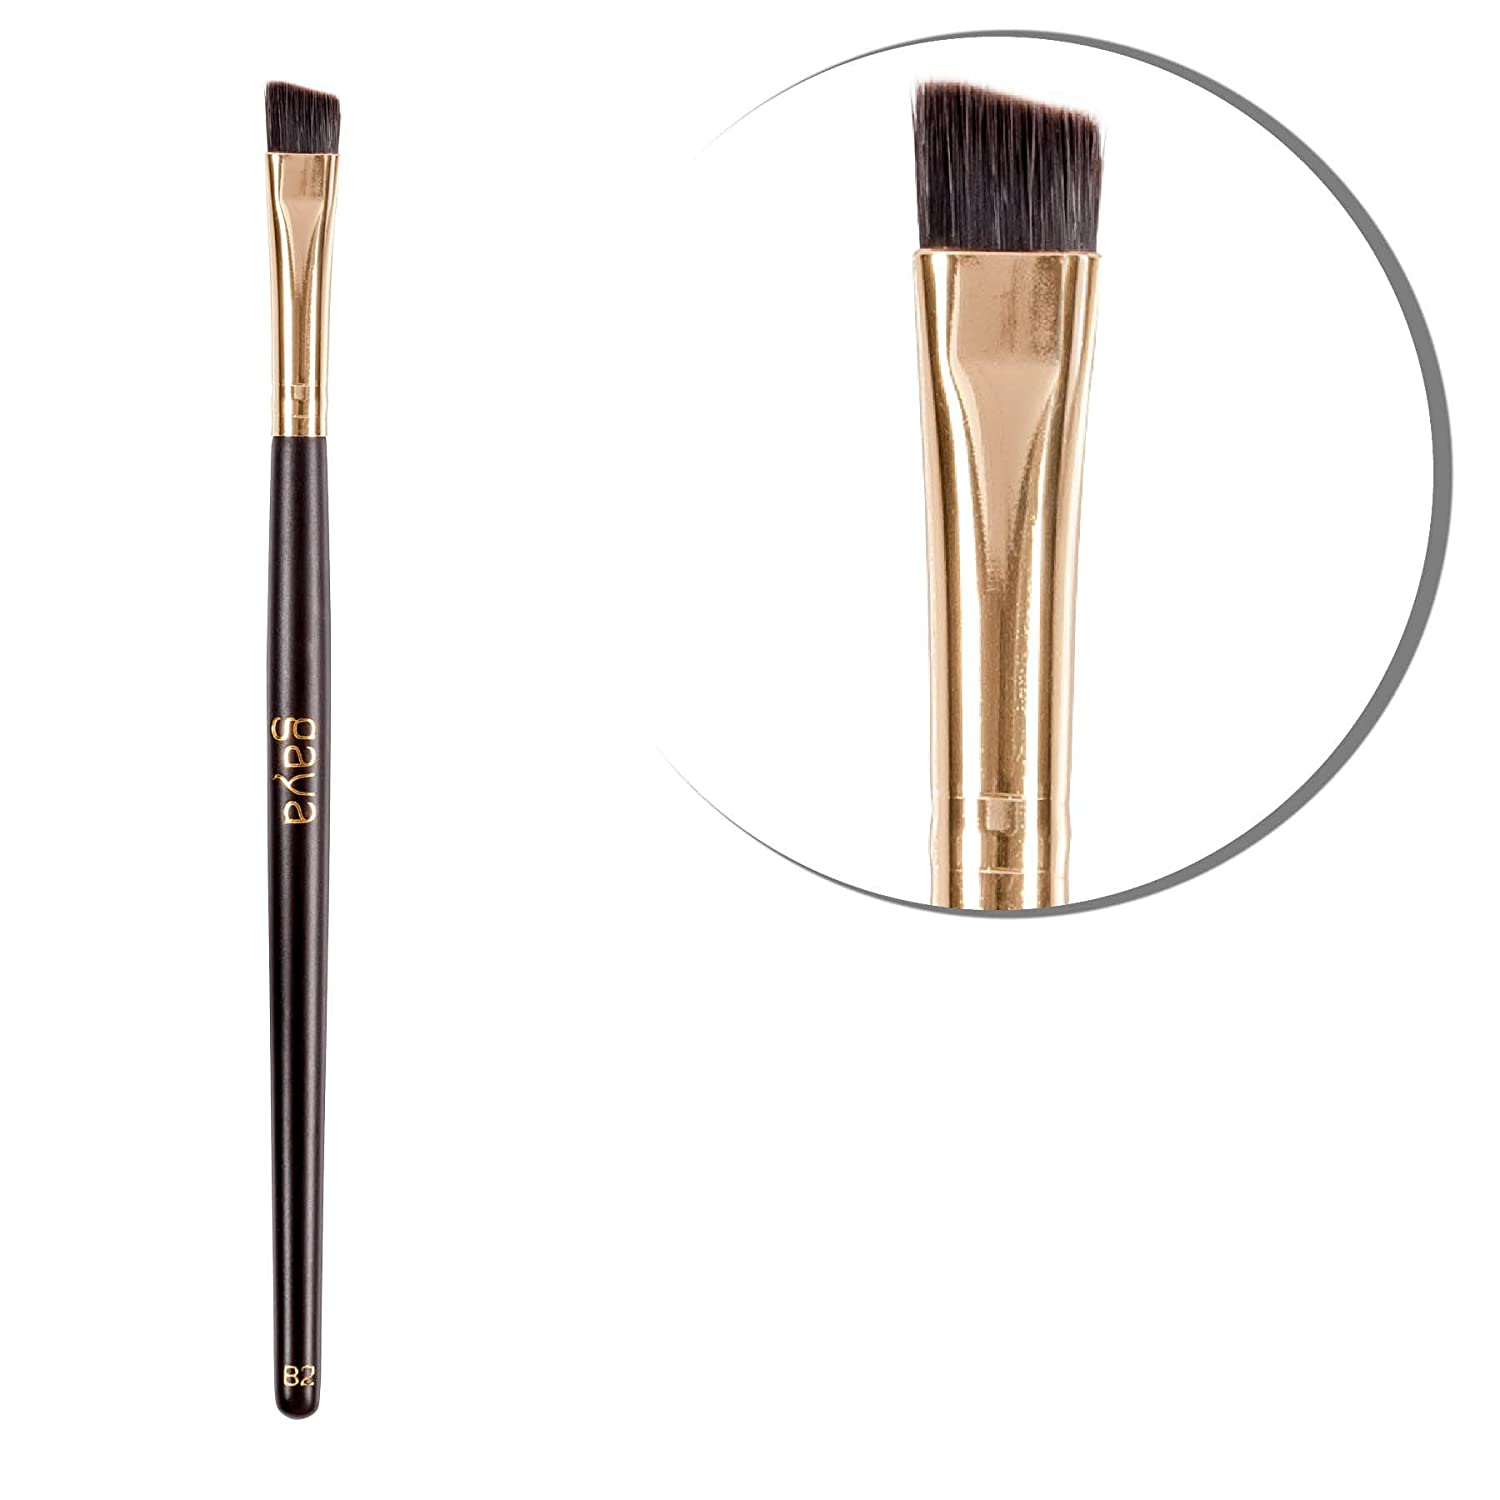 Angled Liner Defining Makeup Brush - B2 Vegan Professional High Quality Durable Synthetic Fiber Make Up Lining Brush - Define & Line Your Eyes & Eyebrows with Ease